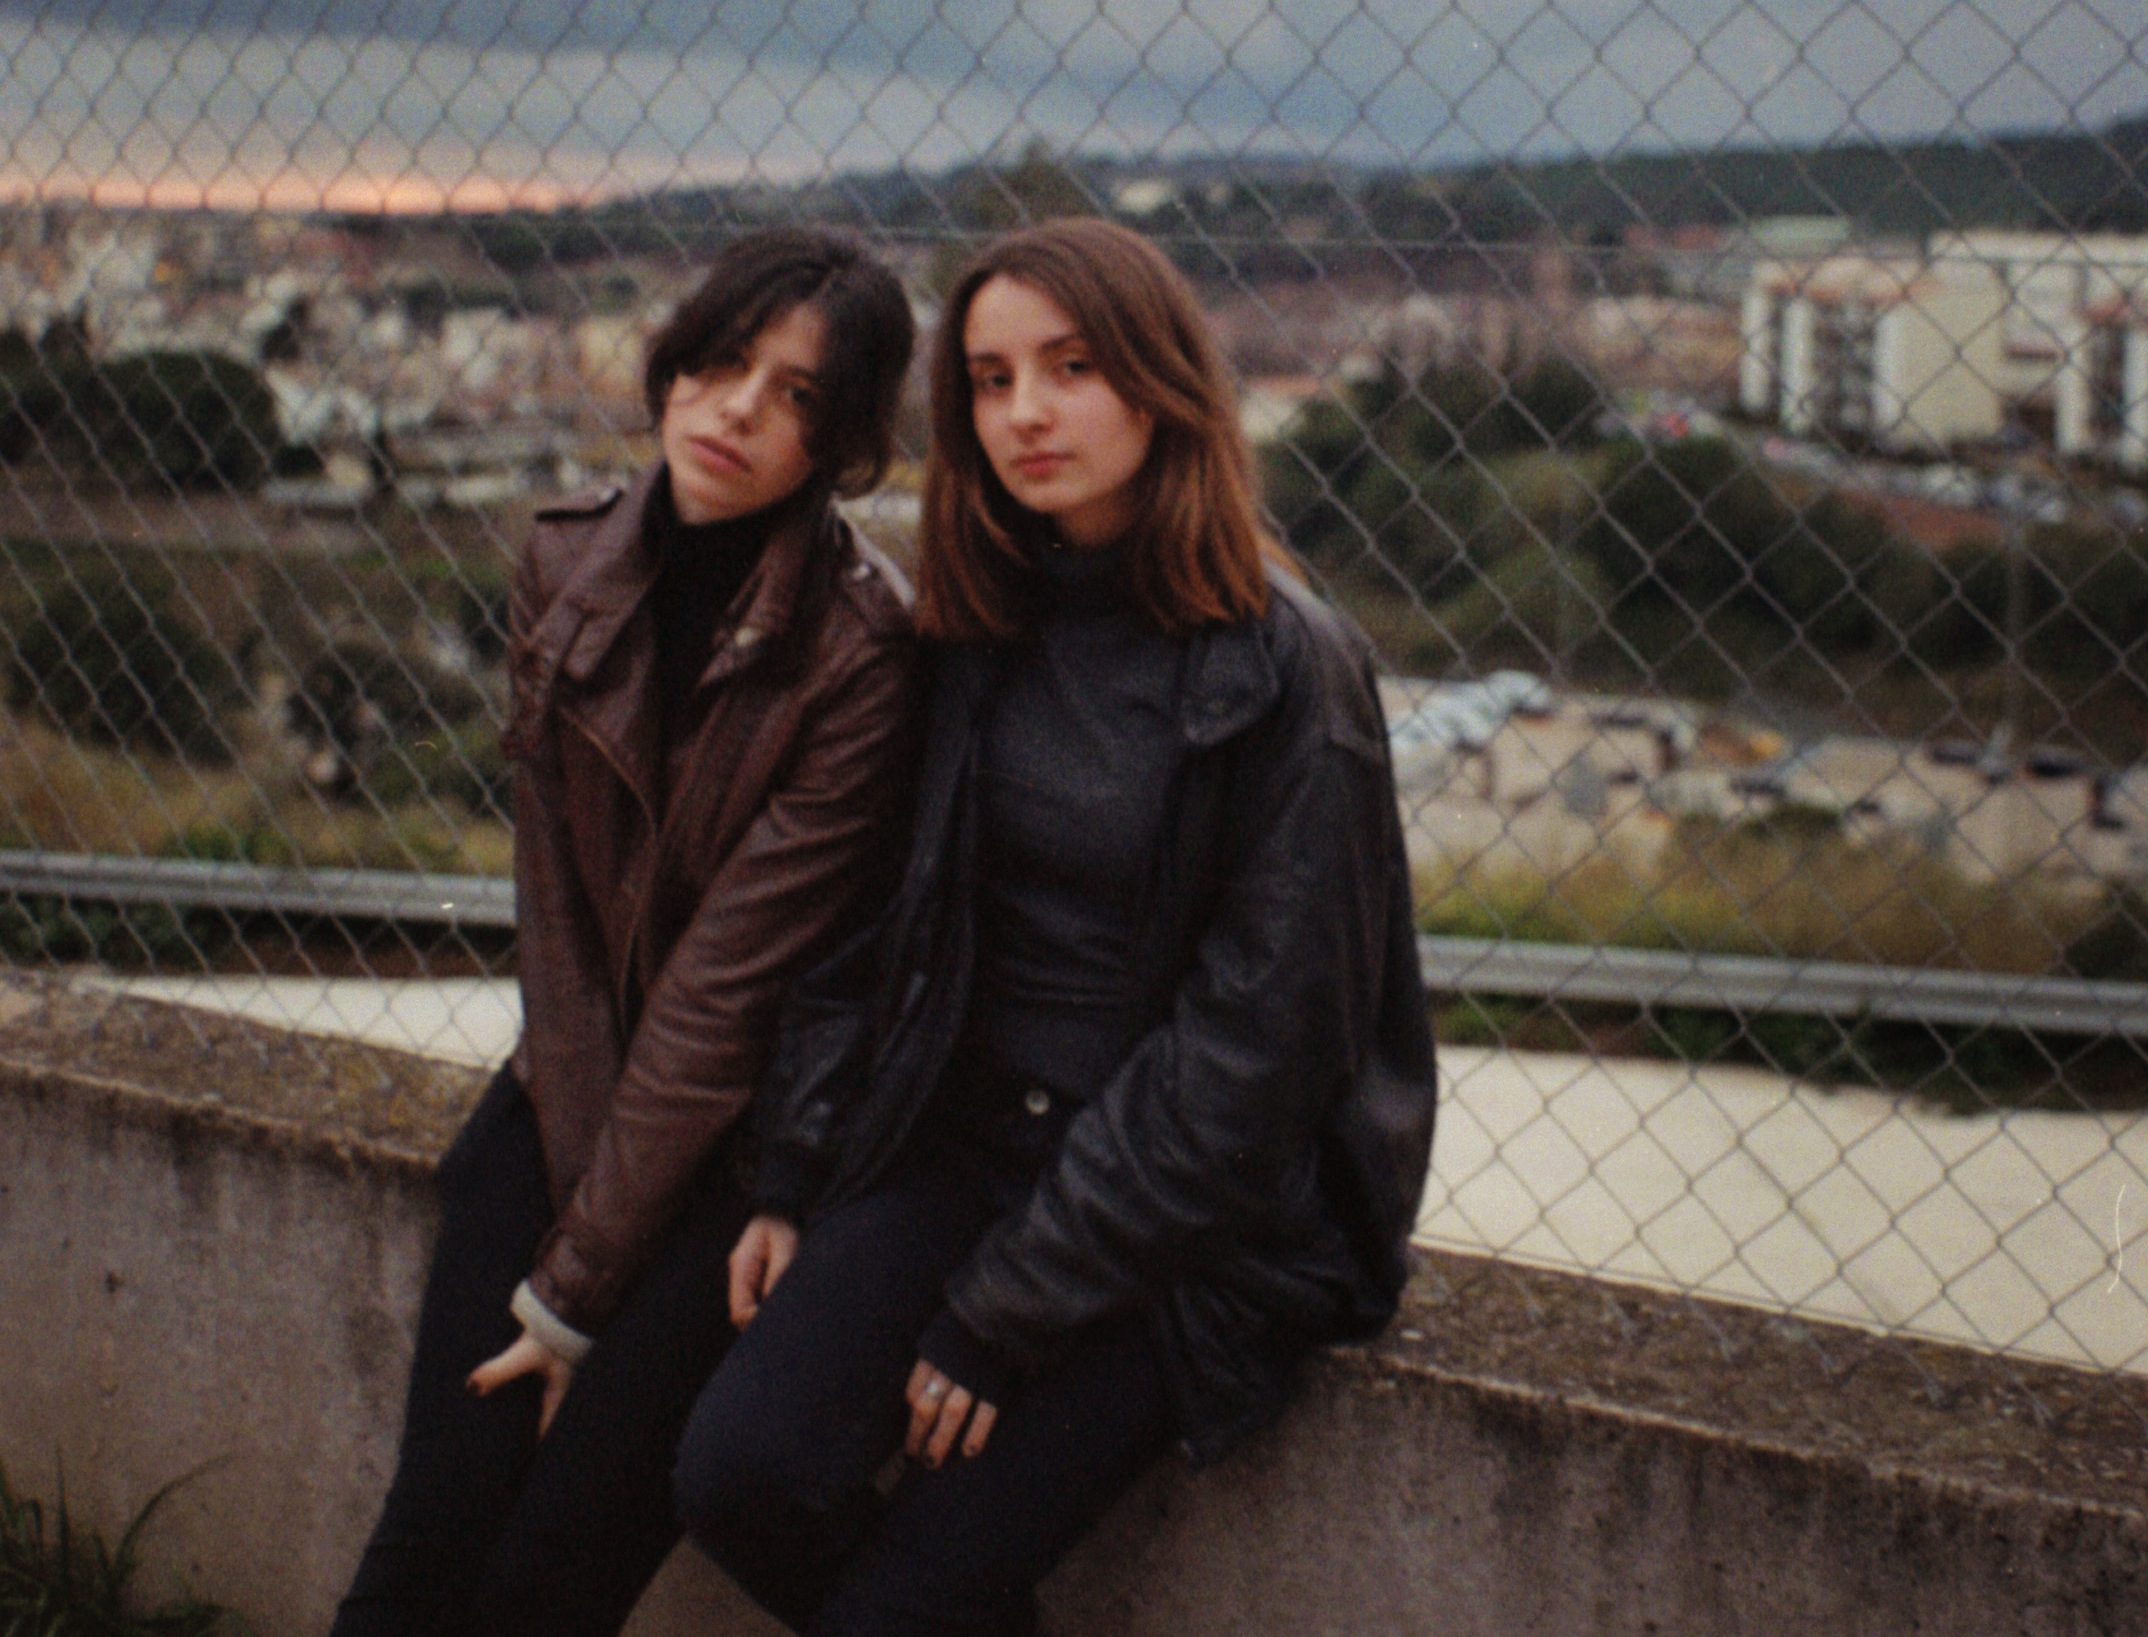 The making of MOURN, a Catalonian band with a cause